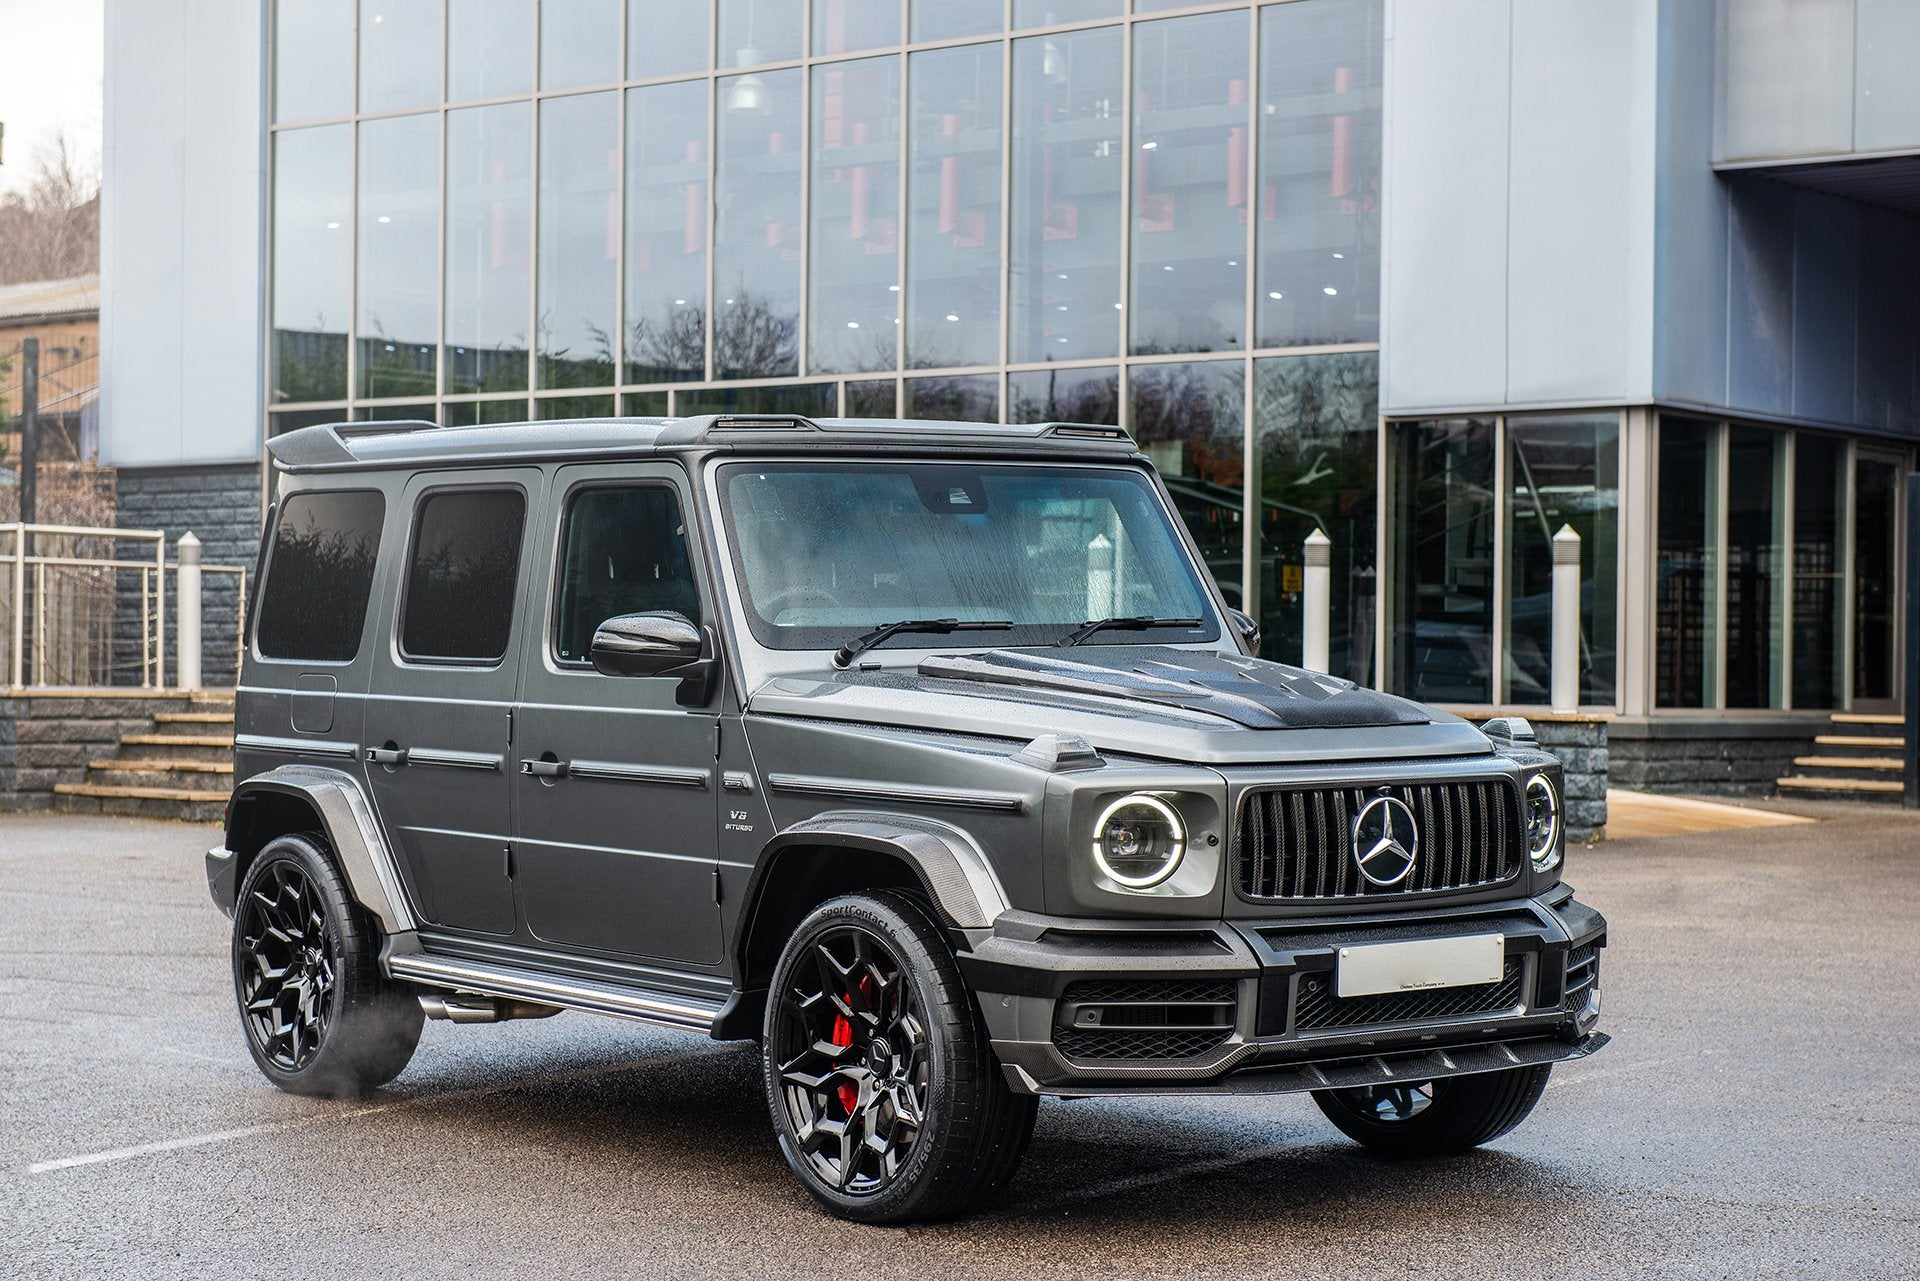 MERCEDES G-WAGON (2018-PRESENT) EXPOSED CARBON FRONT BUMPER